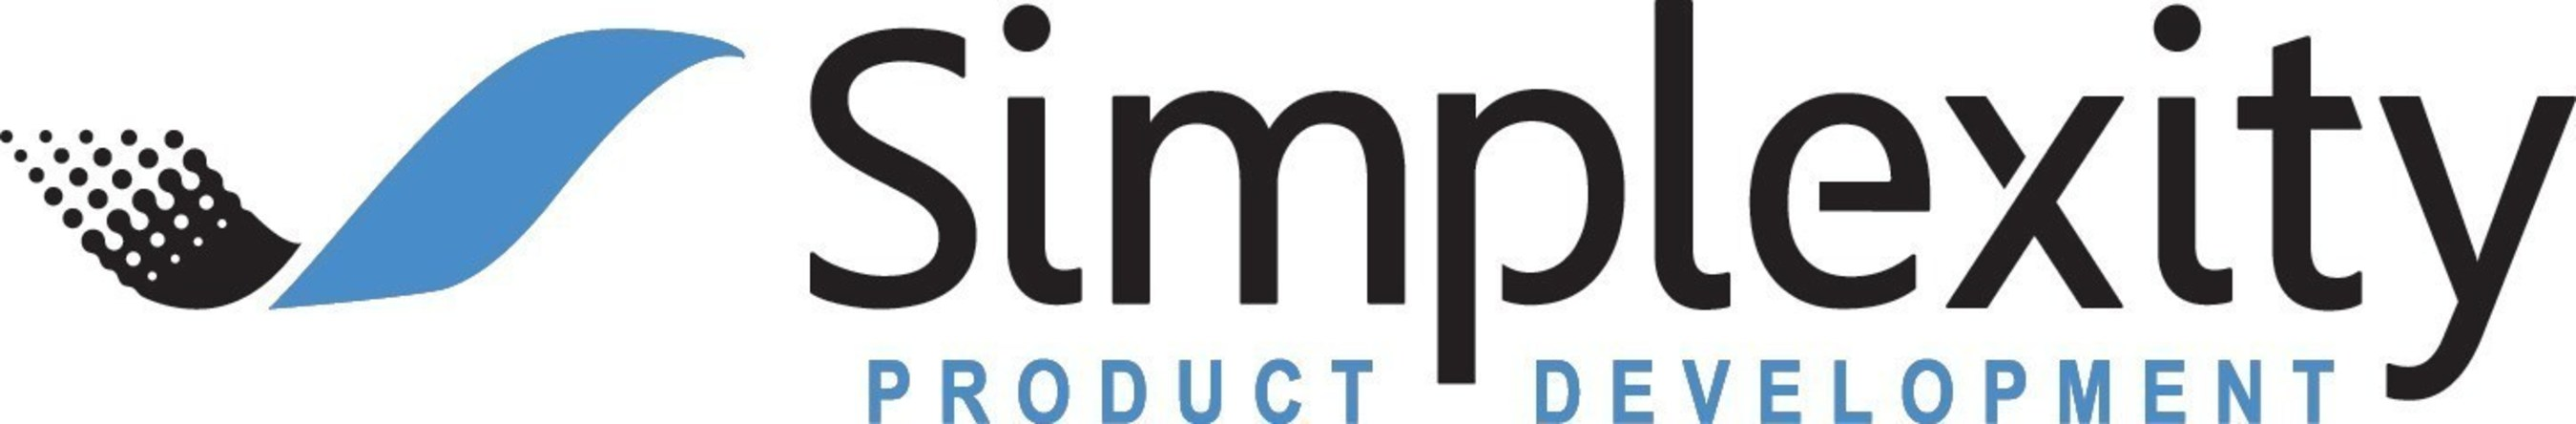 Simplexity Product Development is a product development engineering firm that strives for simplicity in design, reducing product costs and improving the reliability of technology products. It specializes in mechatronics, a systems approach to designing mid- to high-volume products with motion, sensors and electronics in their heart.